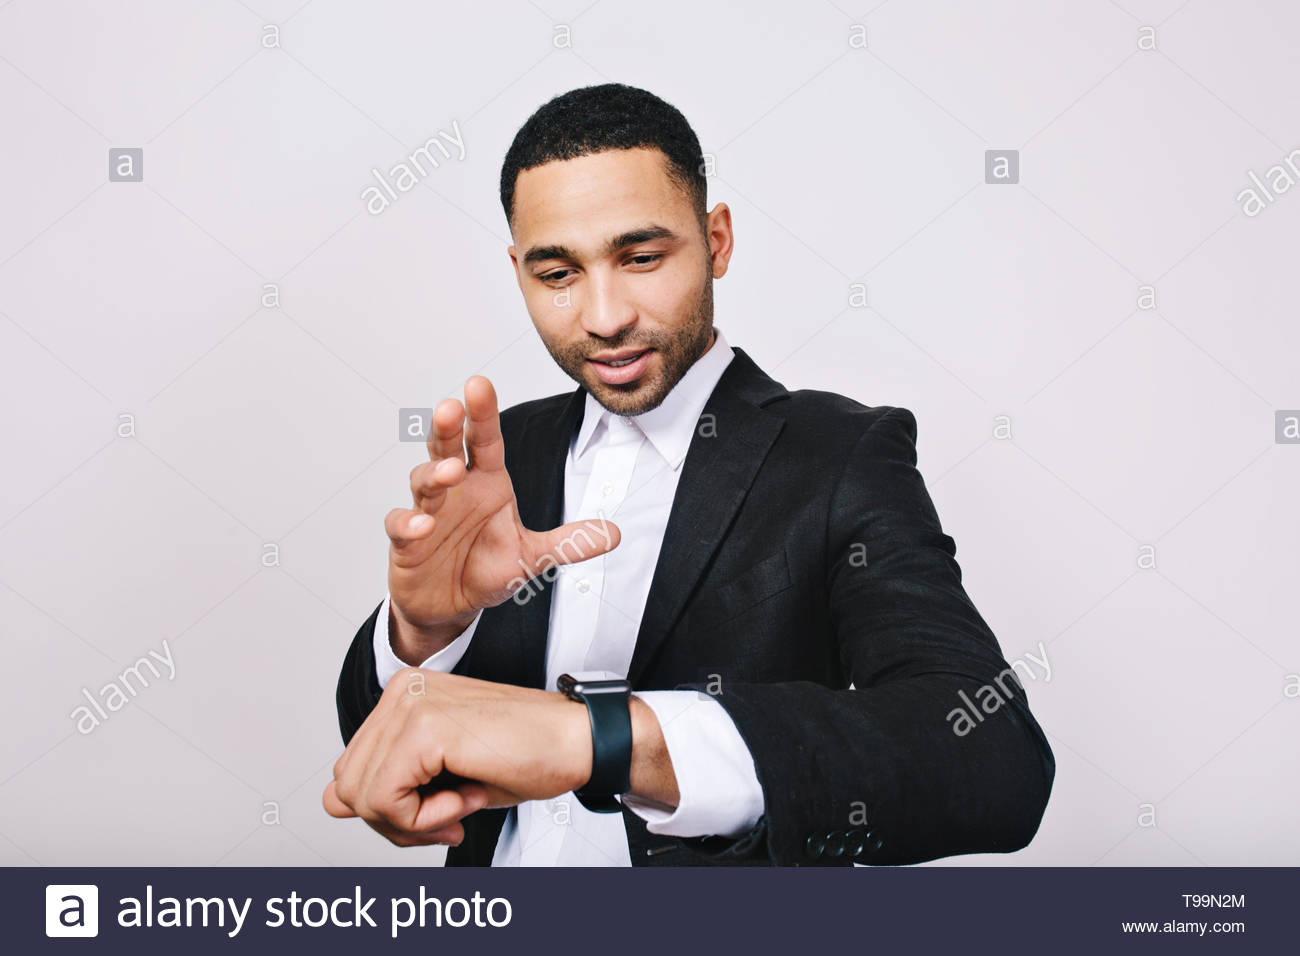 Portrait stylish young man in white shirt, black jacket having fun with watch on white background. Magic time, smart worker, successful businessman, meeting, work, joy - Stock Image